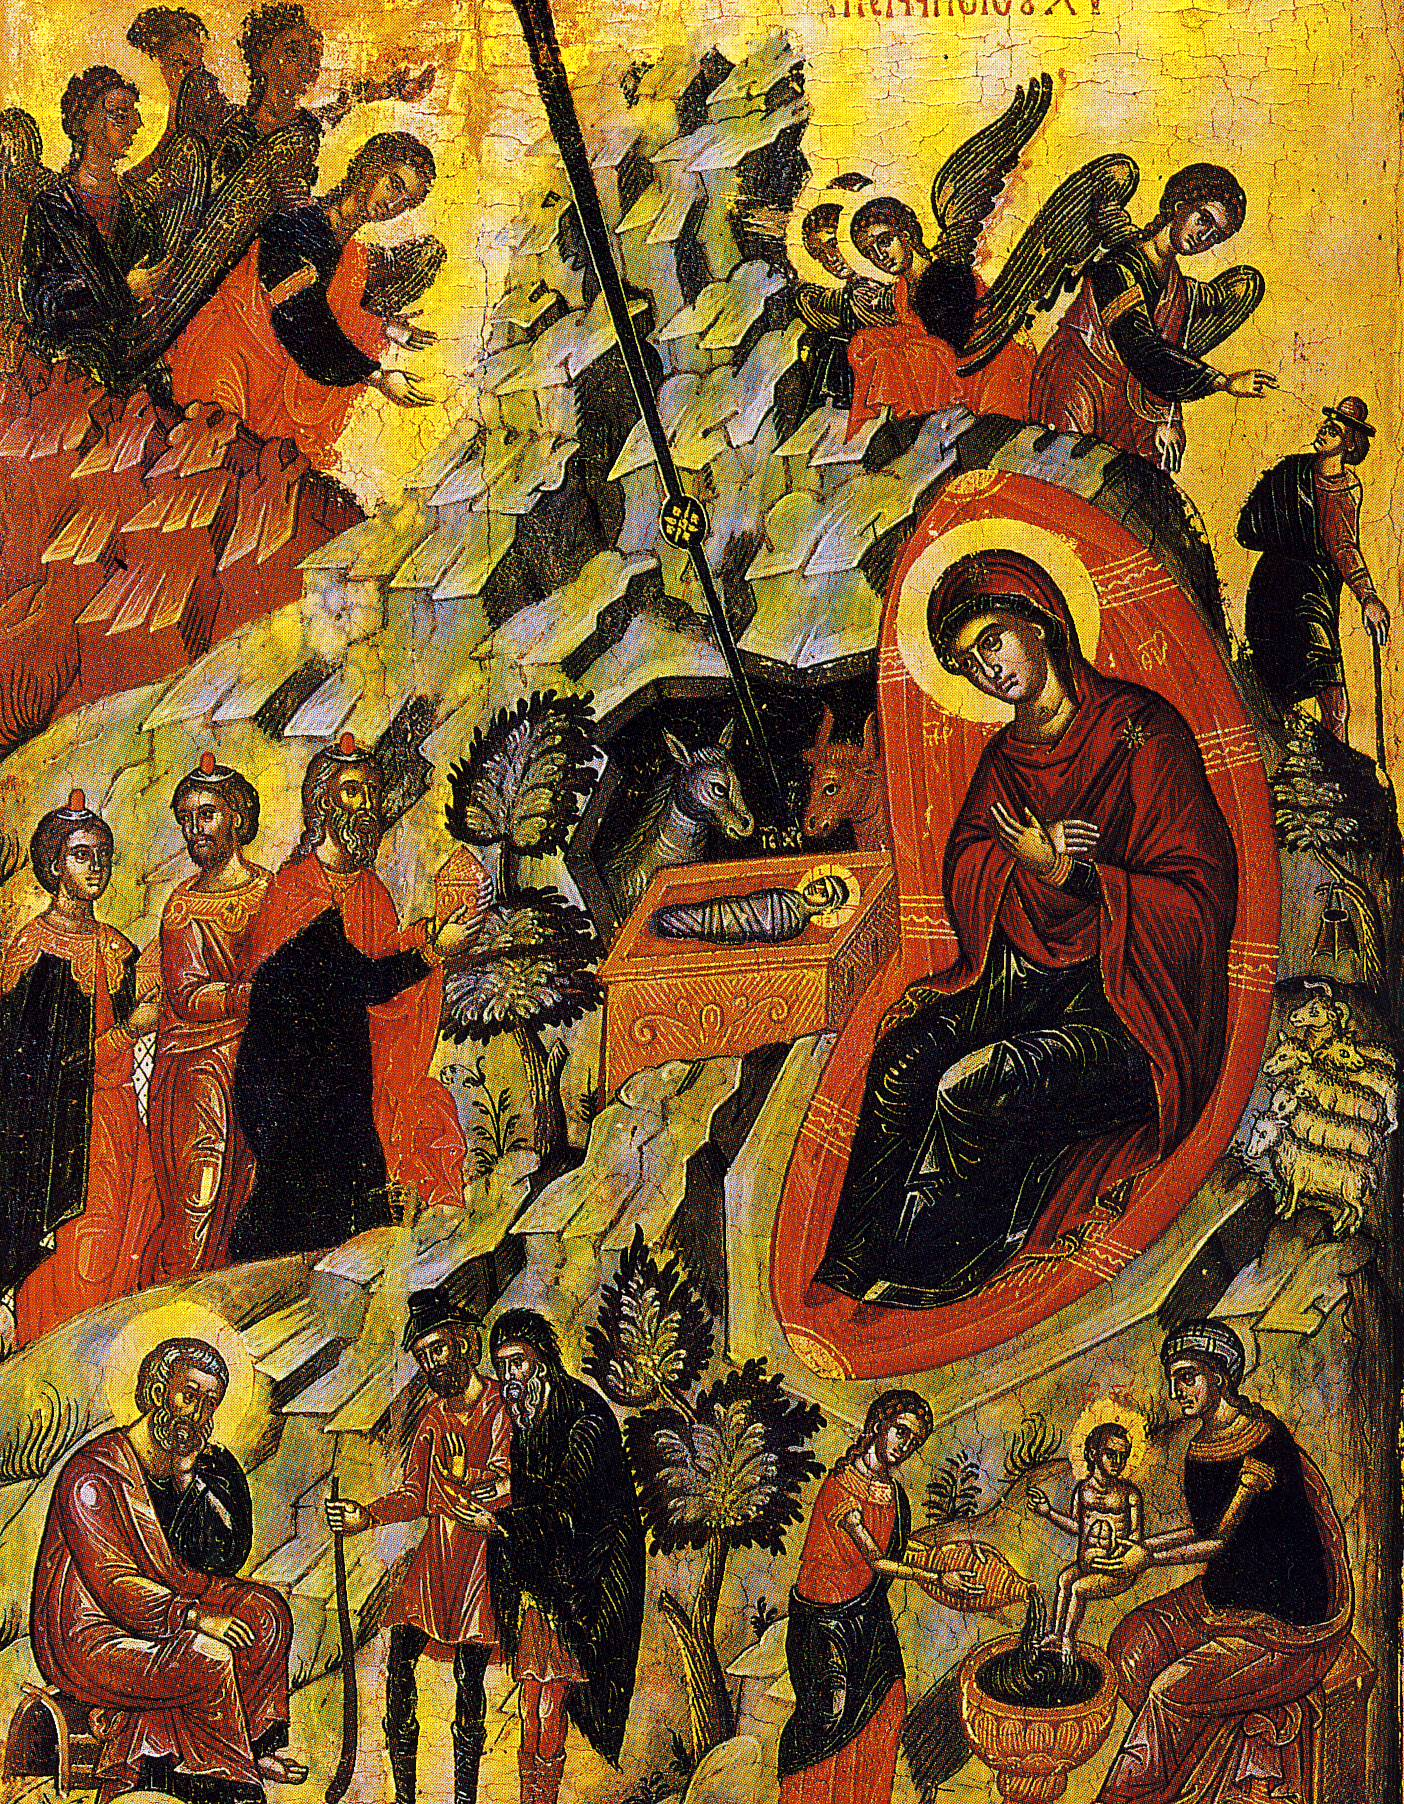 The Nativity of our Lord